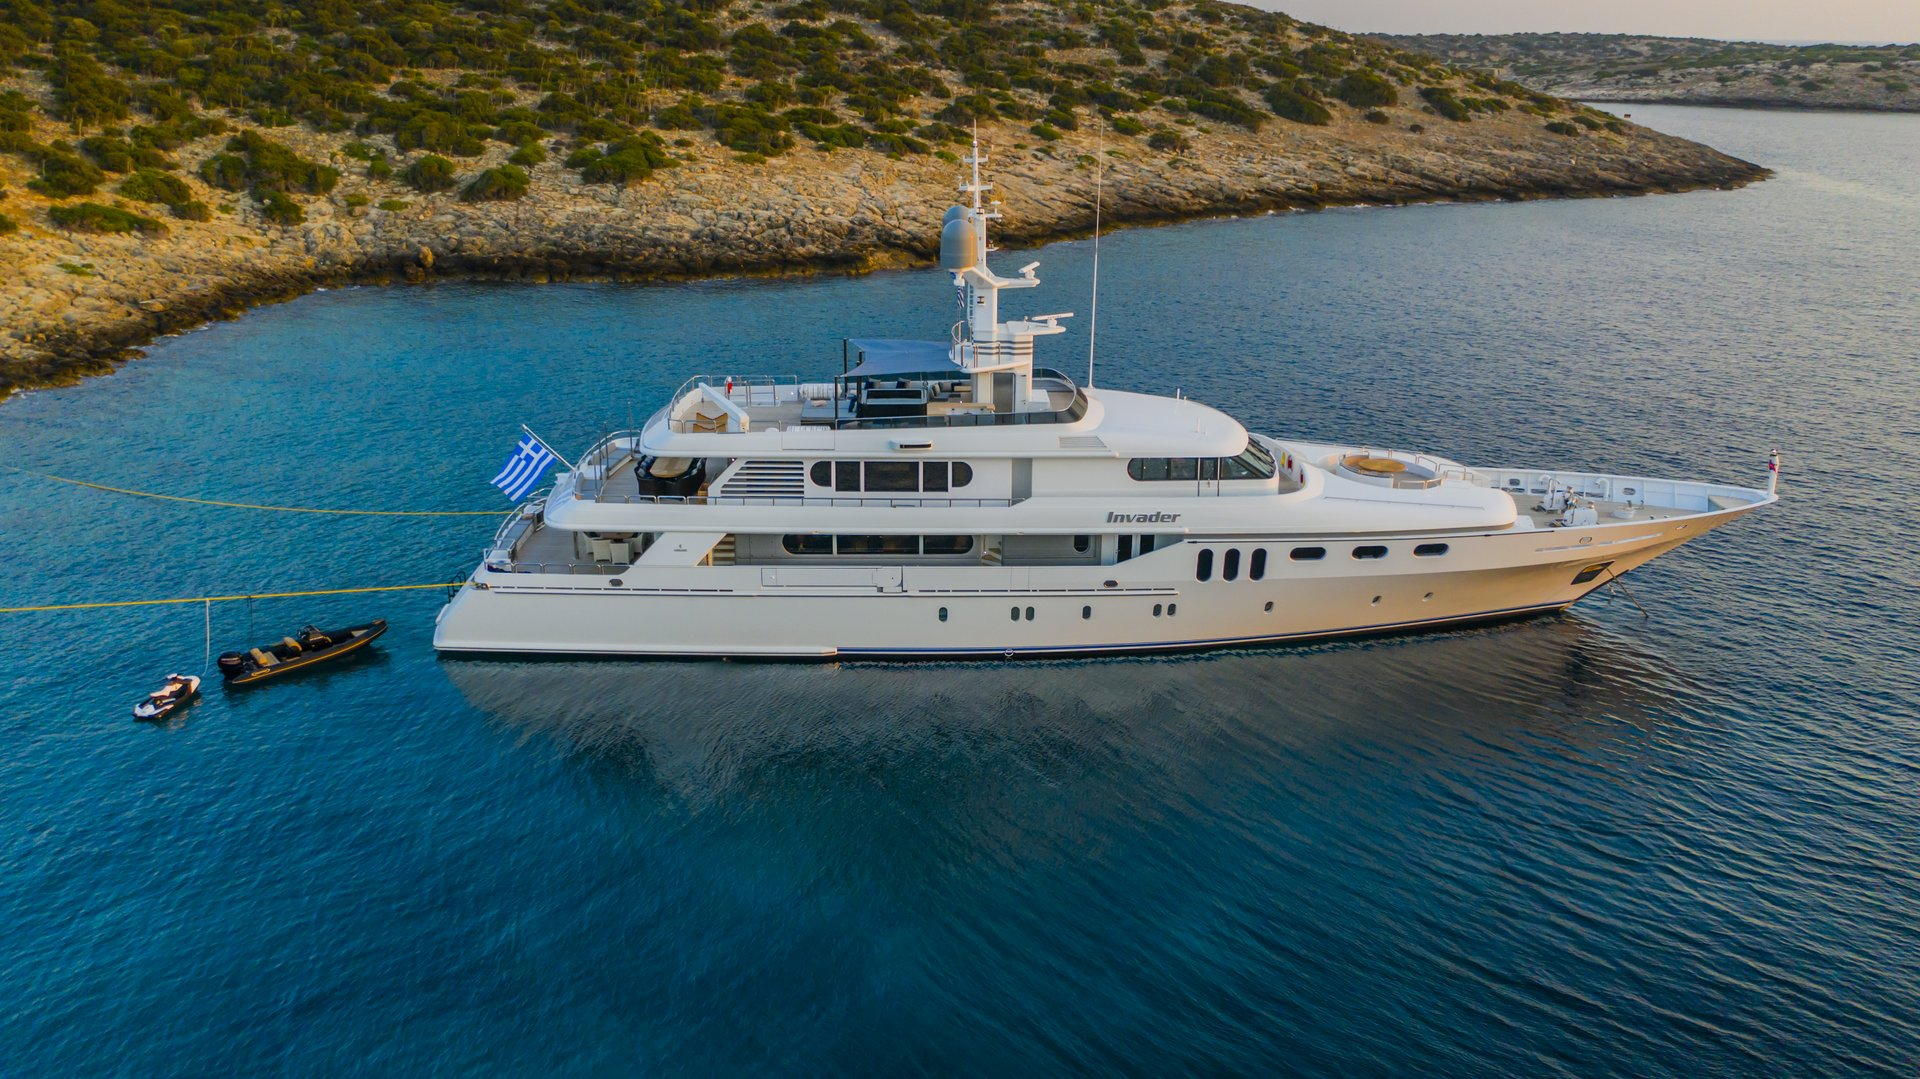 m/y invader yacht for charter bird eye view